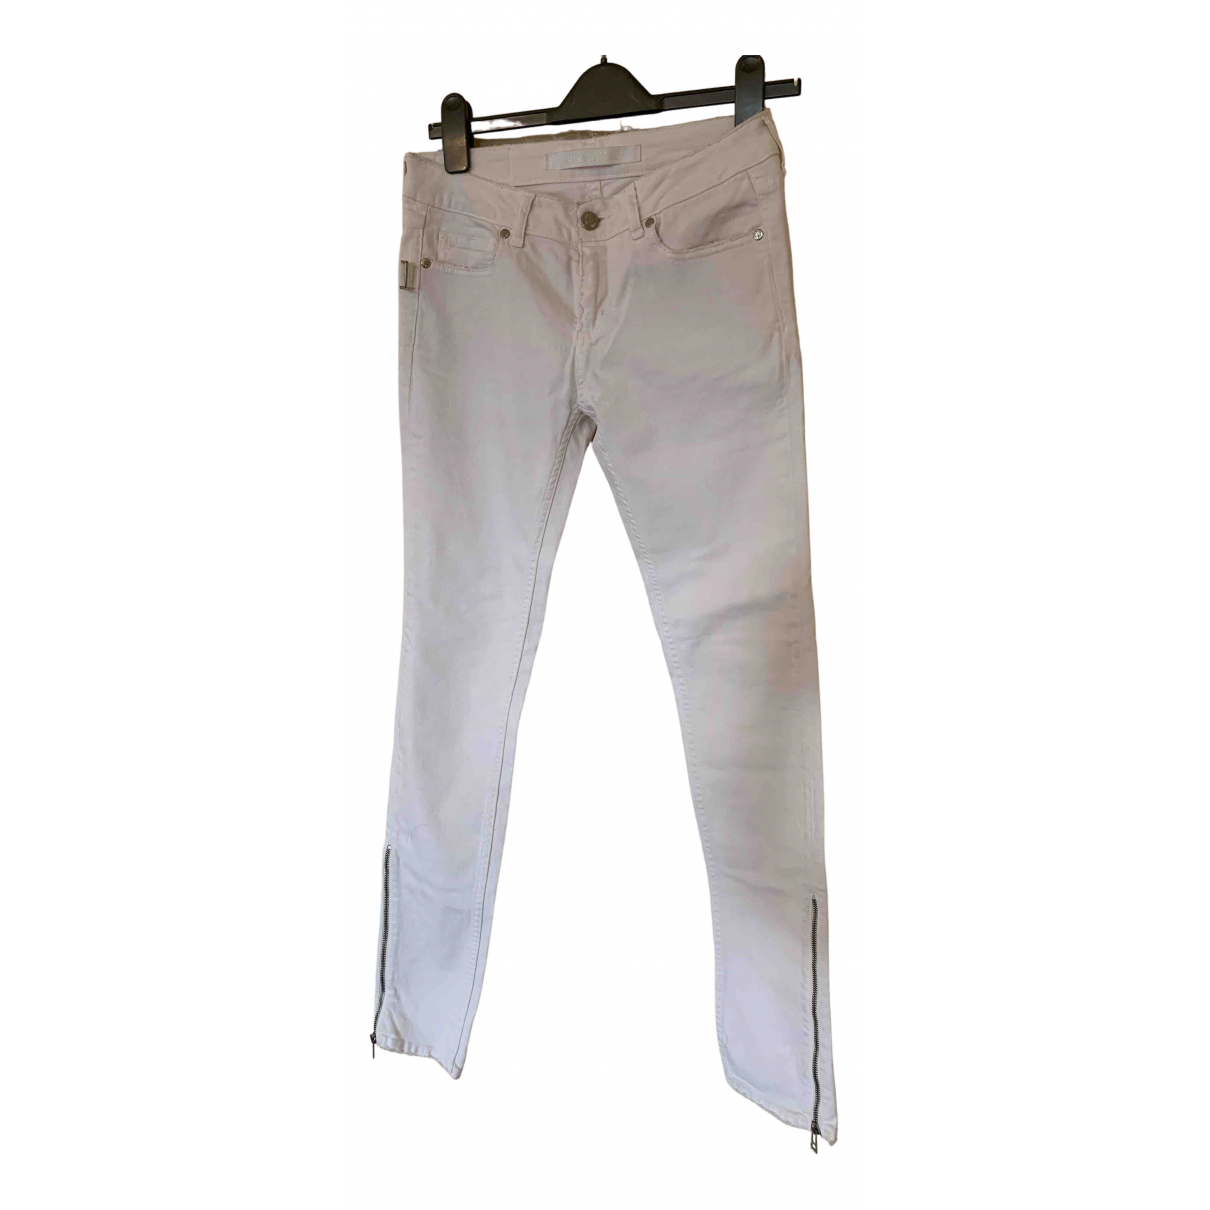 Zadig & Voltaire Spring Summer 2020 White Cotton Trousers for Women 8 UK